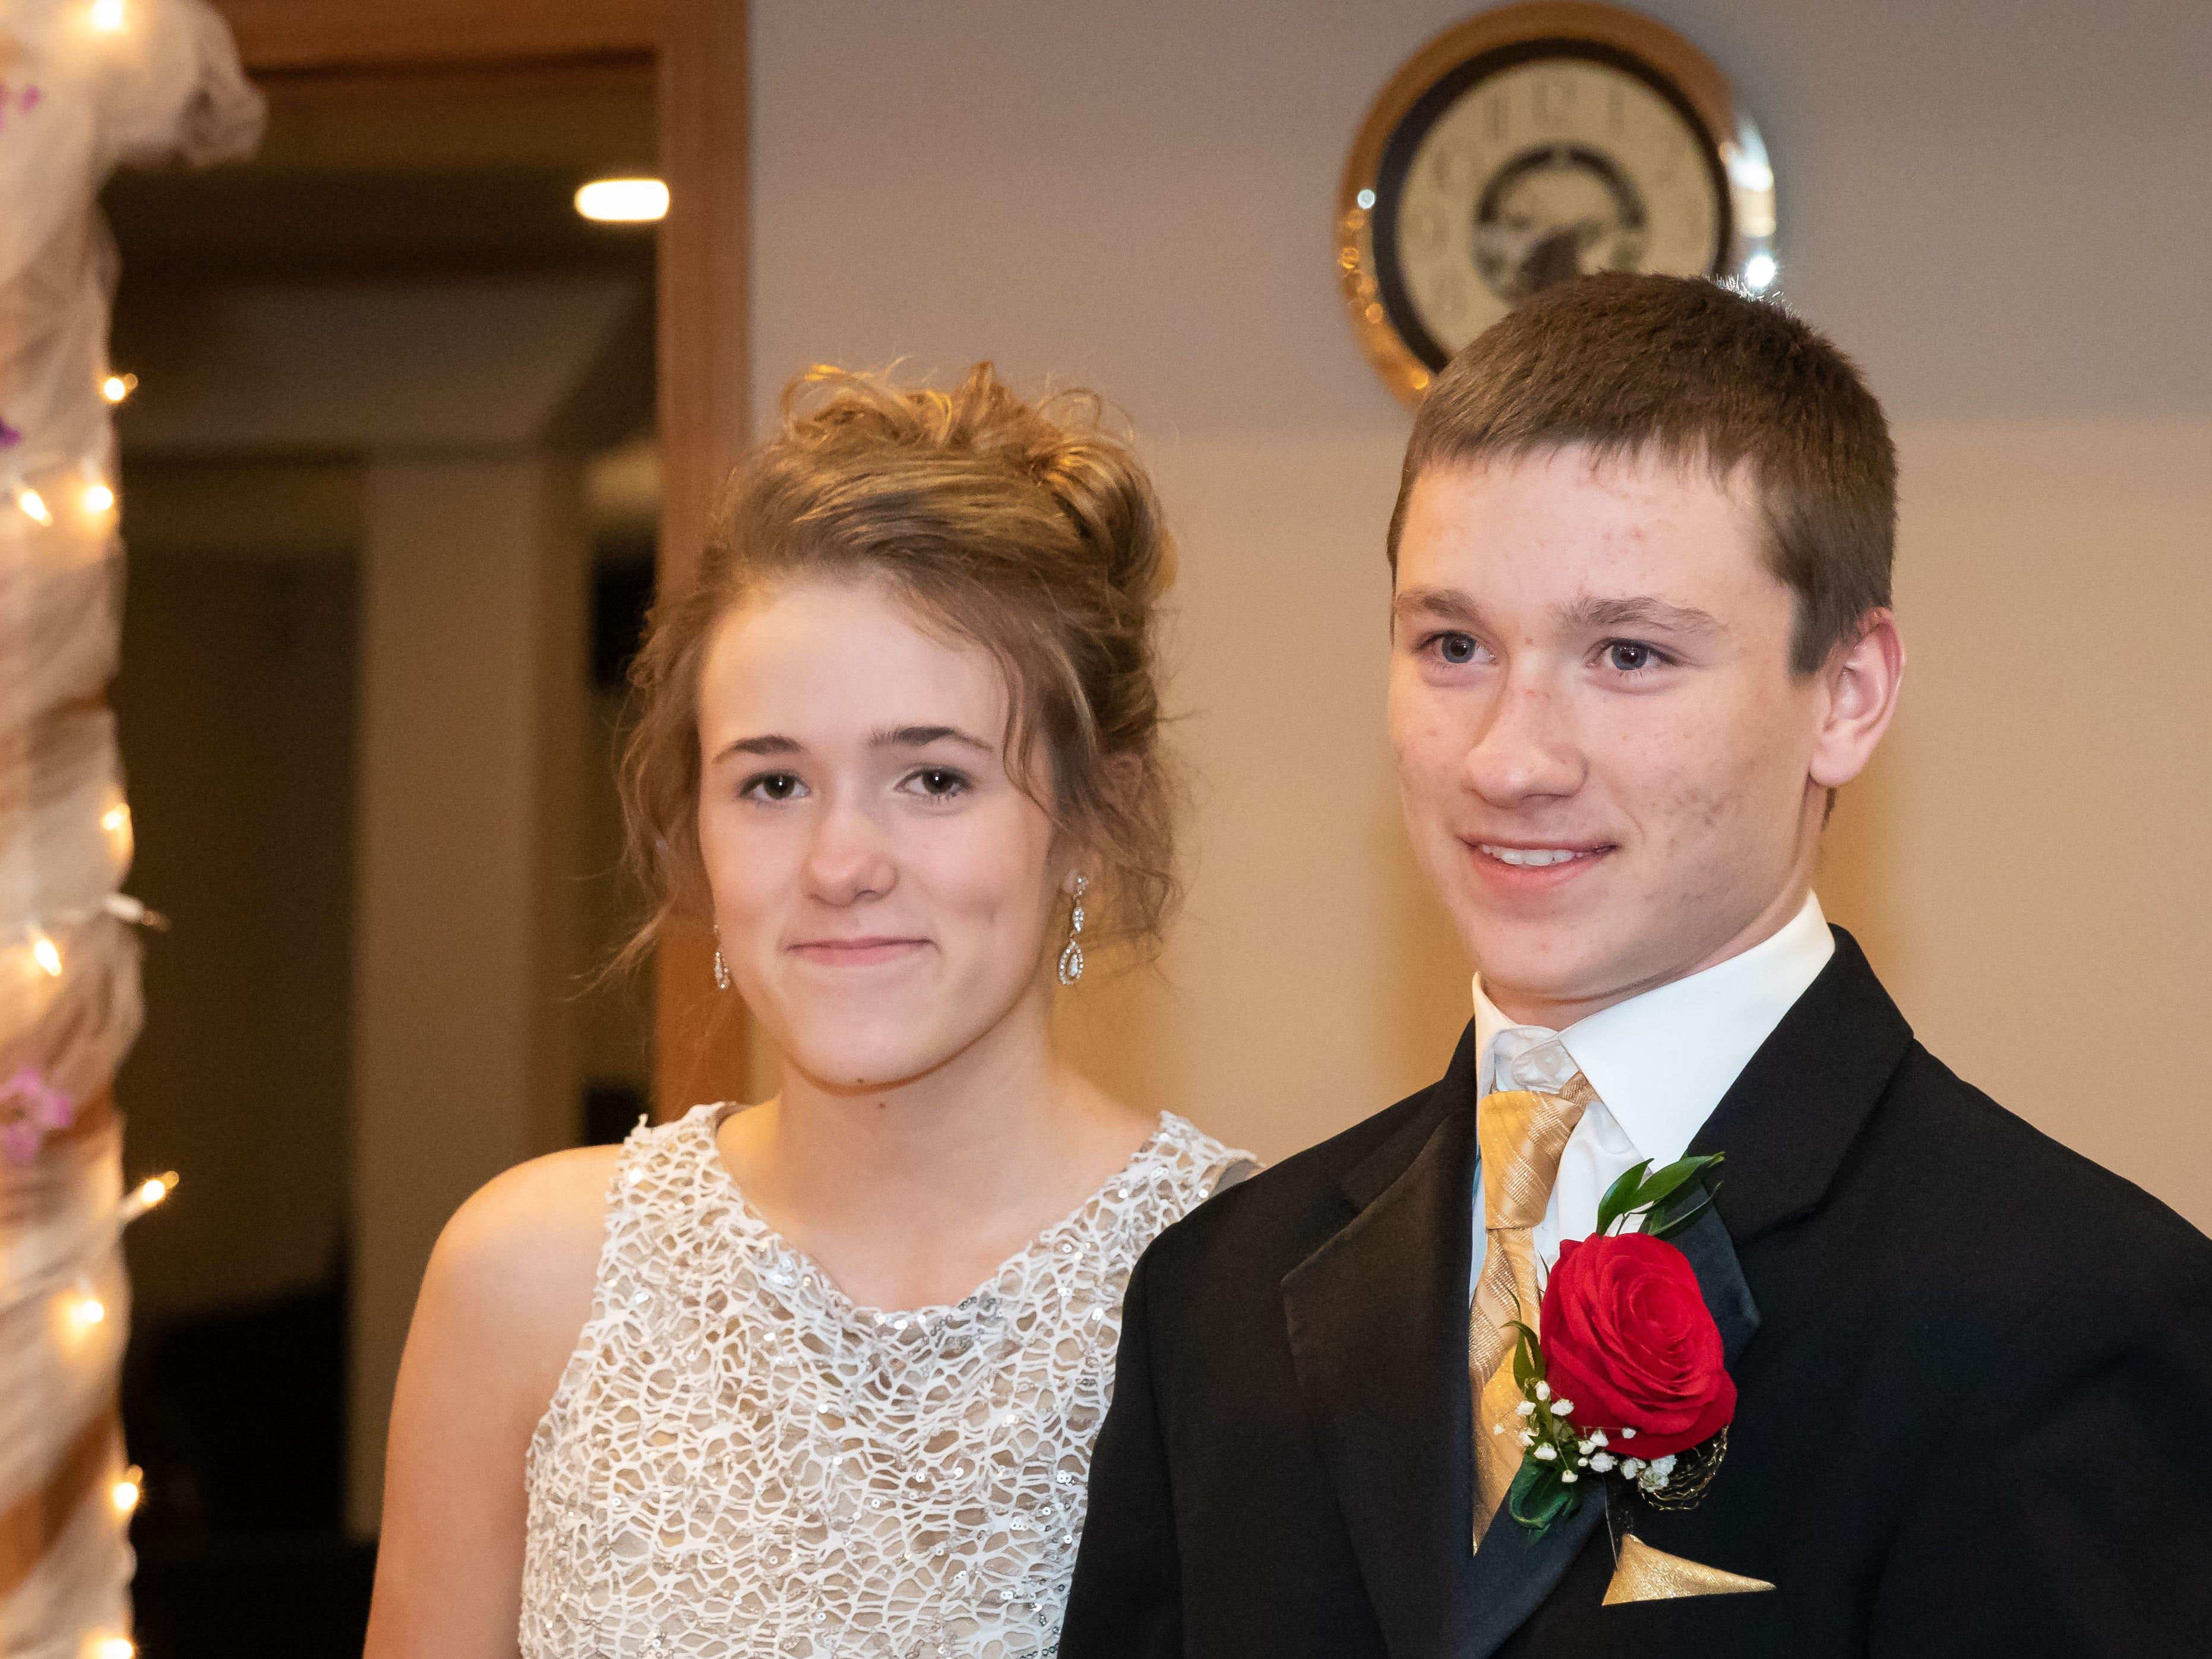 The John Edwards High School Prom was held Saturday, April 27, 2019, at the Wisconsin Rapids Elks Lodge.